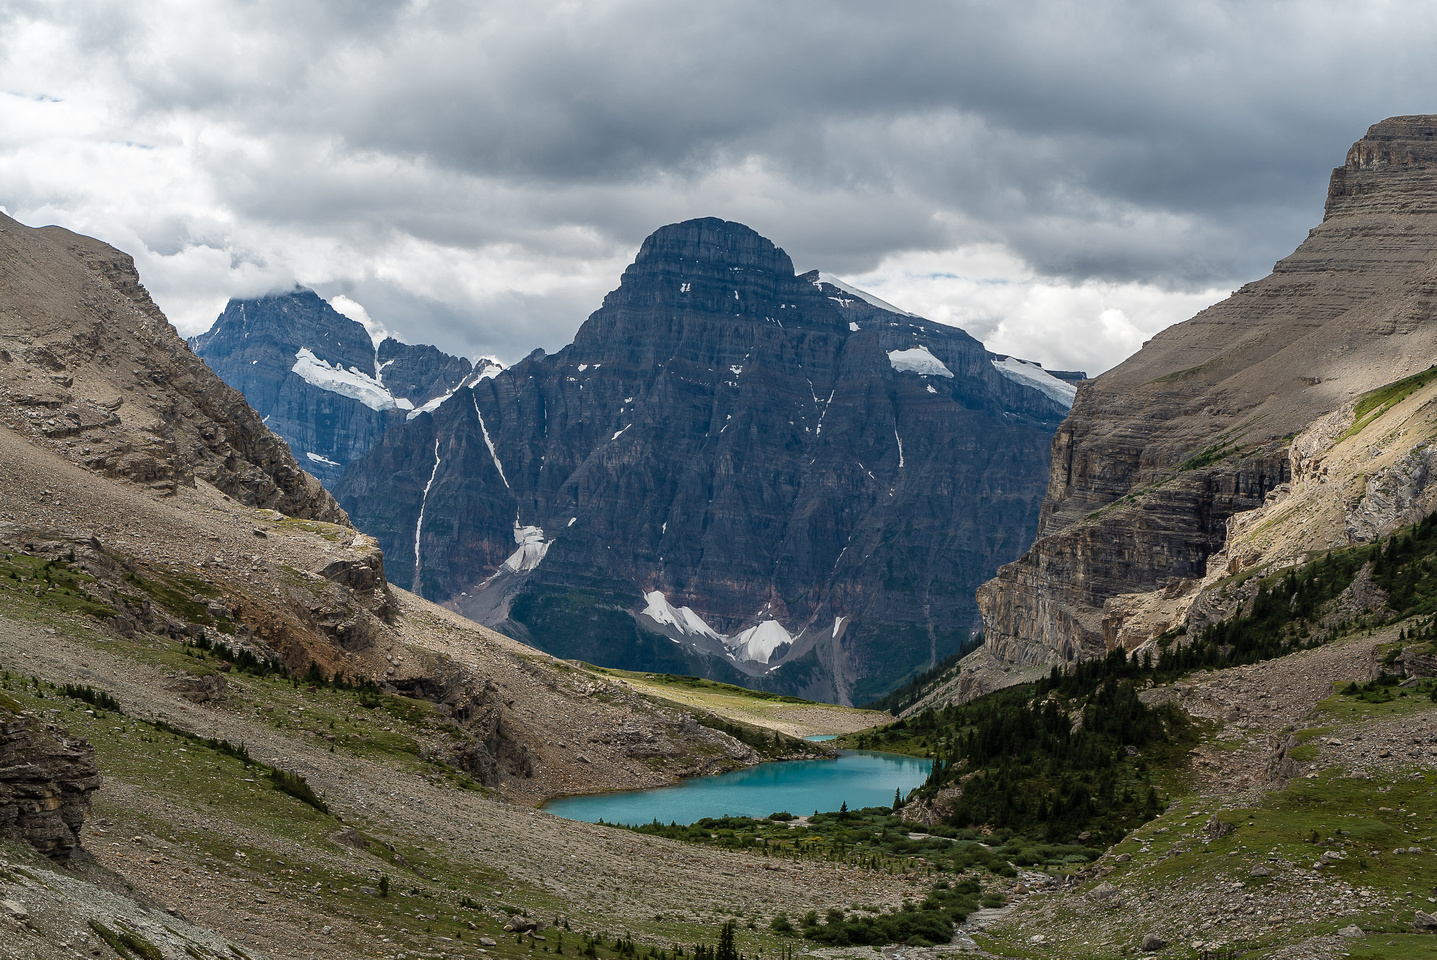 Looking back over the two Lower Totem Lakes with Howse Peak (L) and Chephren (R) in the bg.